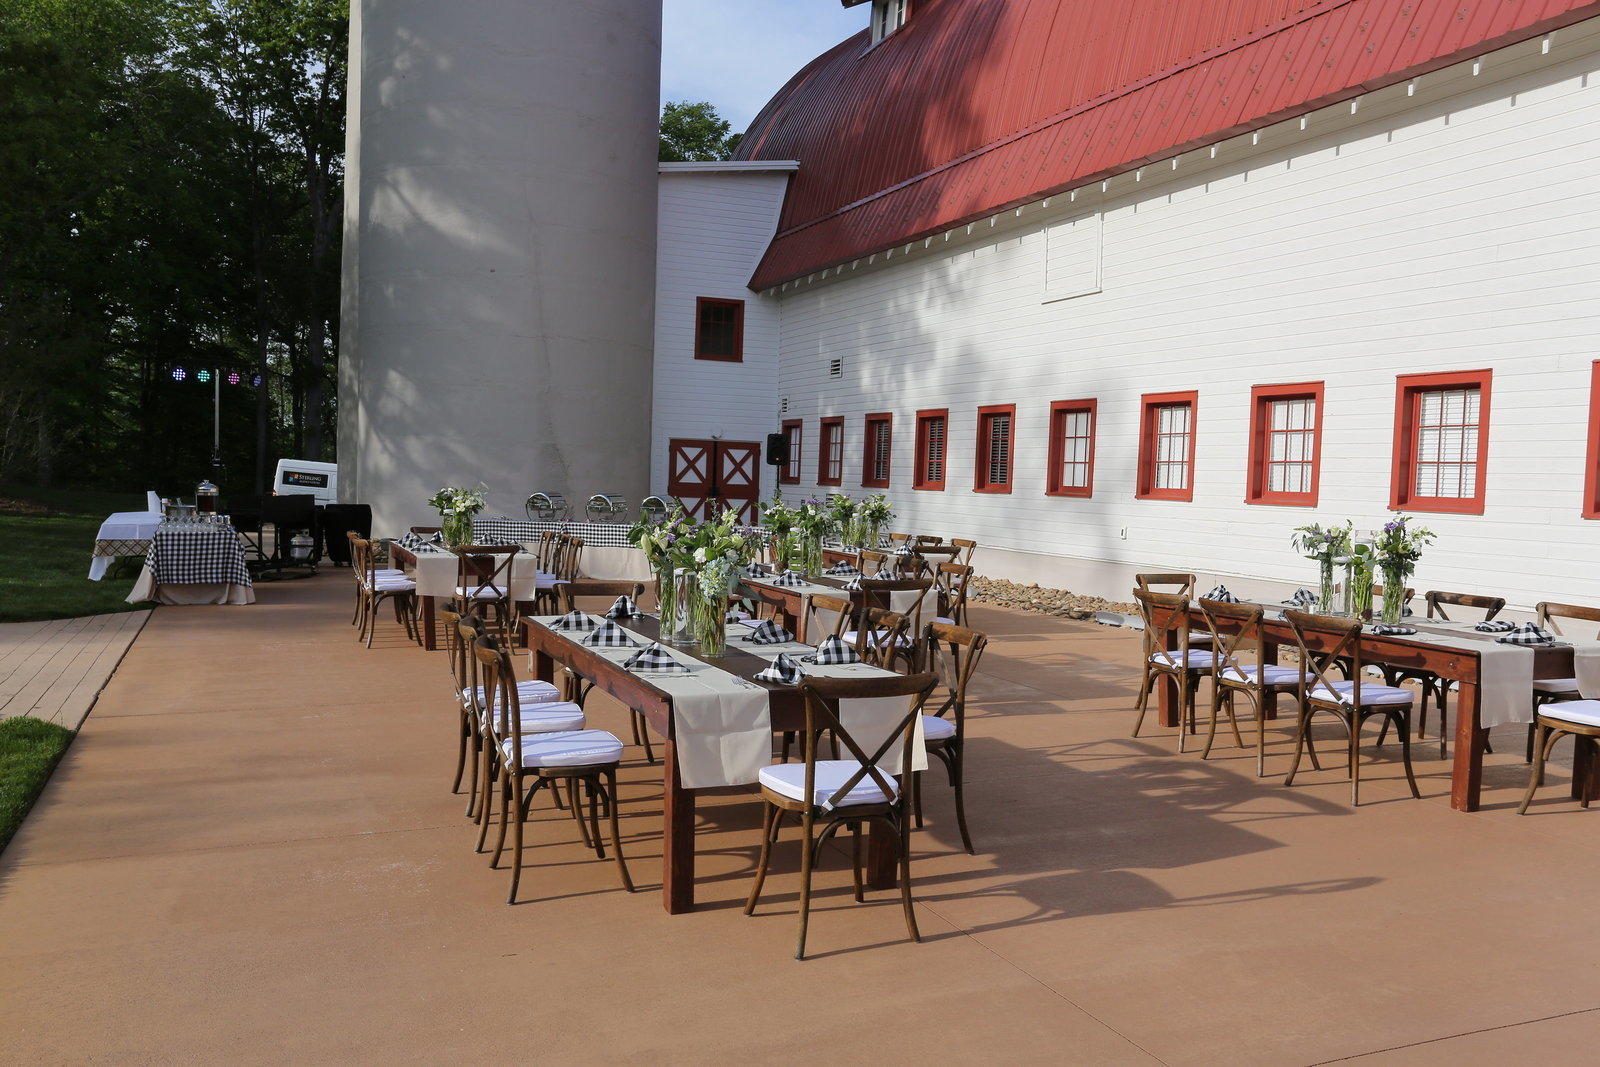 Outdoor rustic event space